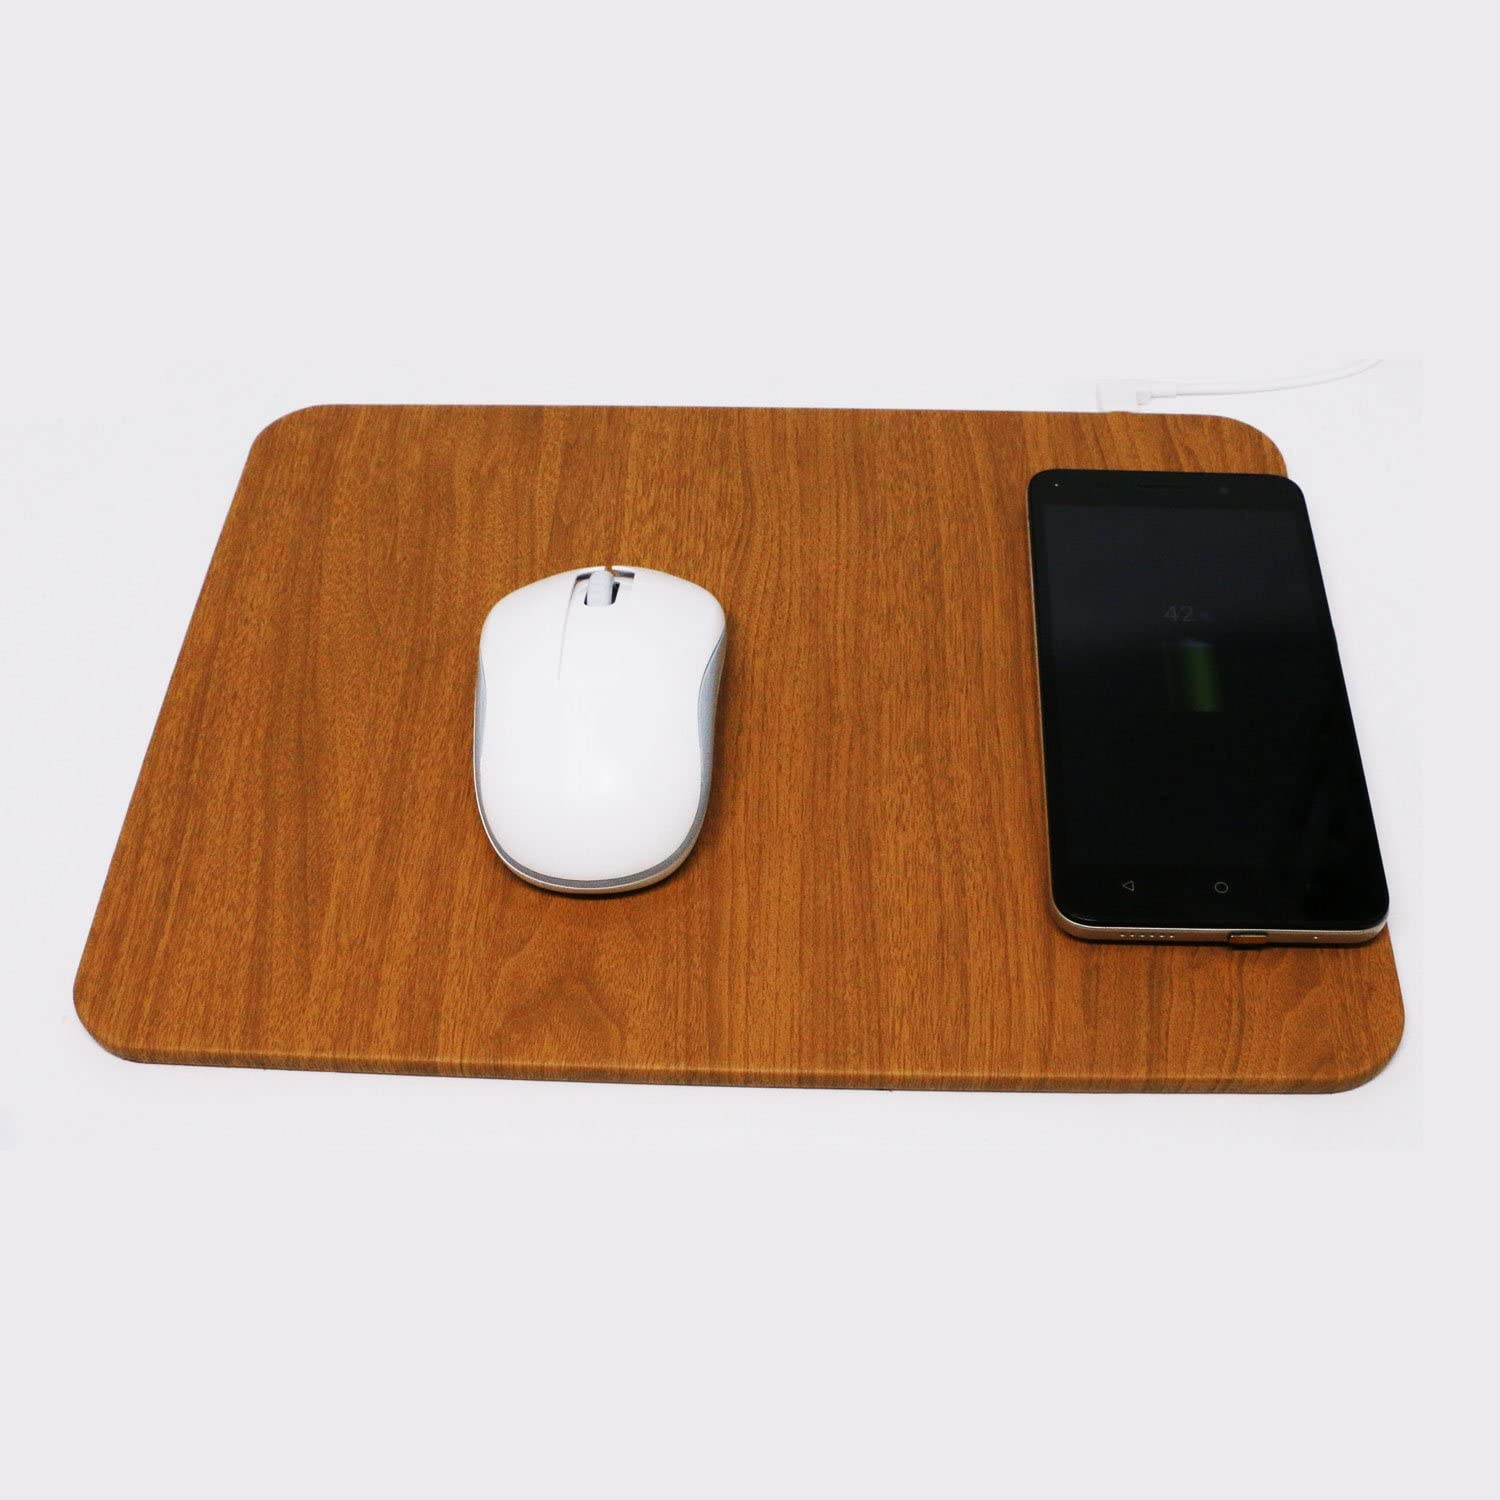 Samsung Note 8,S8,S7,S6//Edge,Nexus 5//6//7 Brown Wireless Mouse Pad Charger,5W QI Wireless Charging Mouse Pad for iPhone X,iPhone 8 8 Plus